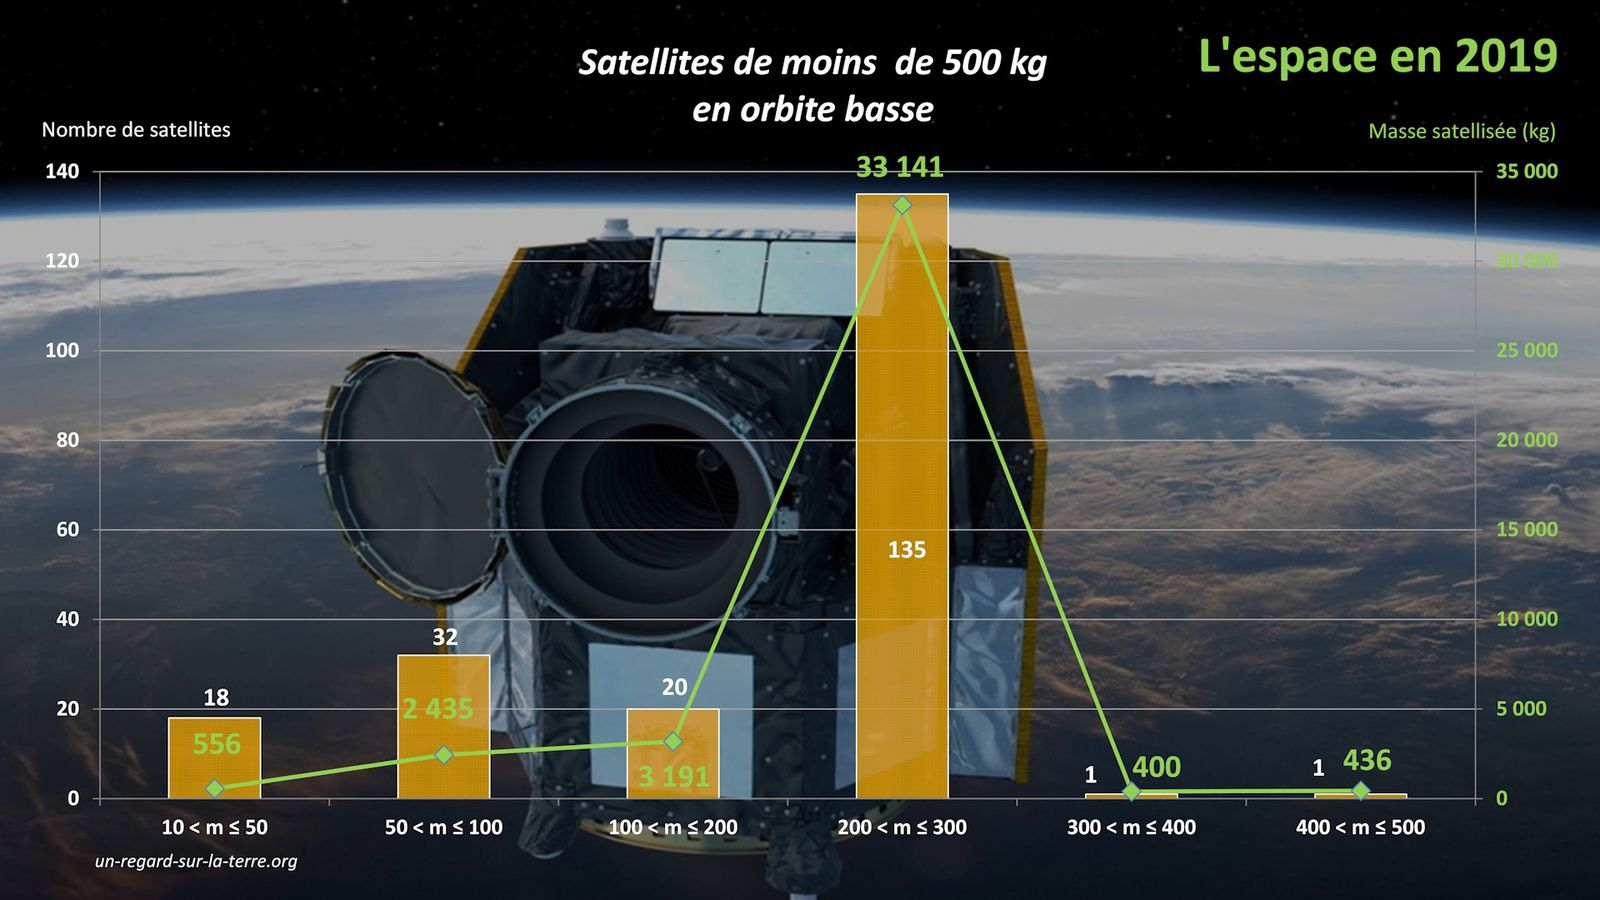 Année spatiale 2019 - Bilan des satellites 2019 - Orbite basse - LEO - ISS - Low Earth Orbit - Nombre de satellites mis en orbite basse  - Masse satellisée par gamme de masse - Détails masses de 10 à 500 kg - Space year in review - 2019 in space